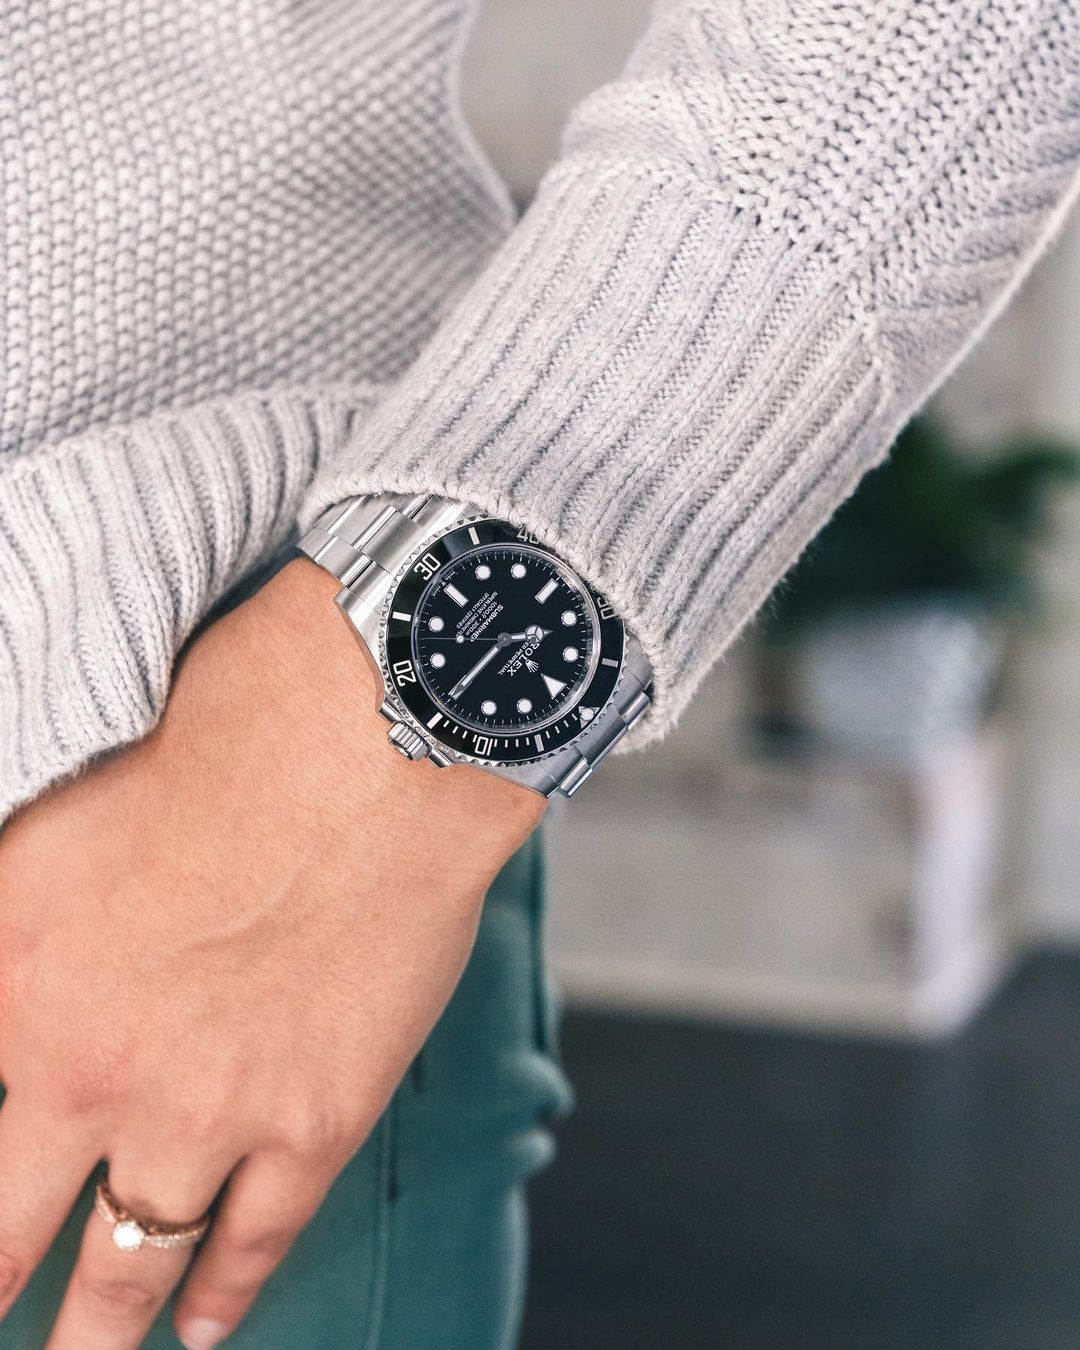 rolex submariner on a woman